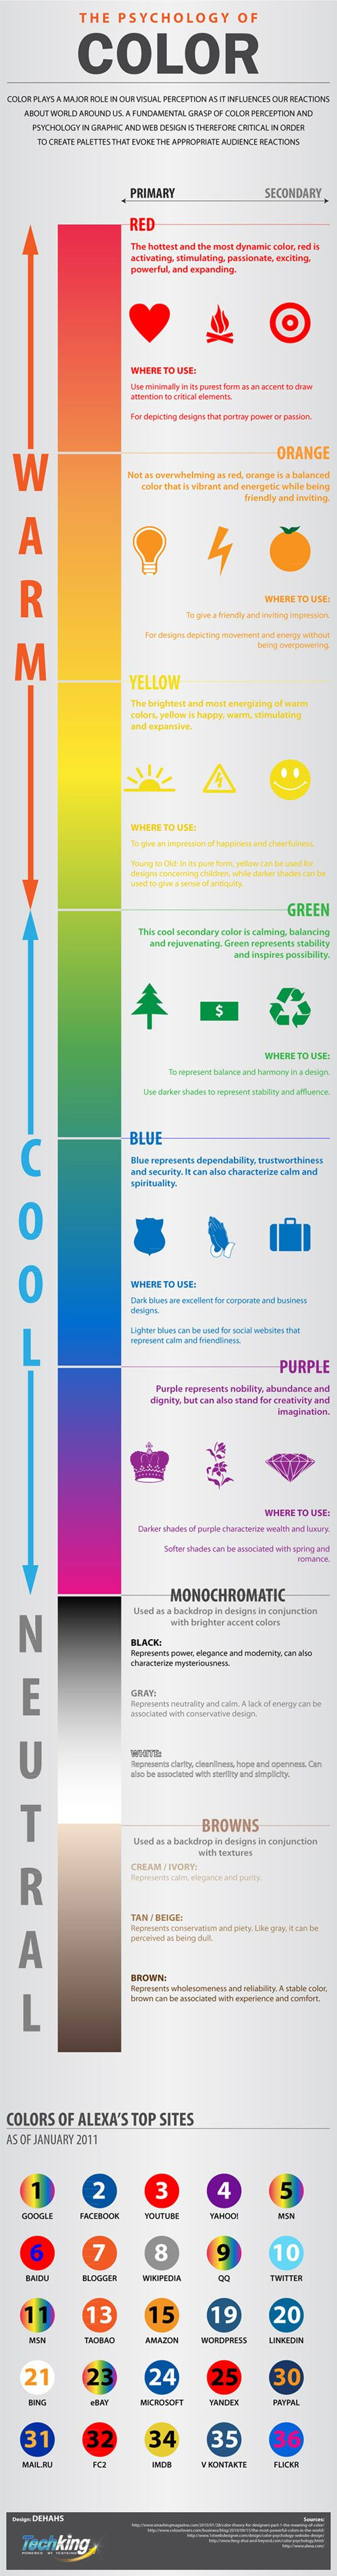 403 best colors random stuff scrapbooking images on pinterest the psychology of color nvjuhfo Gallery